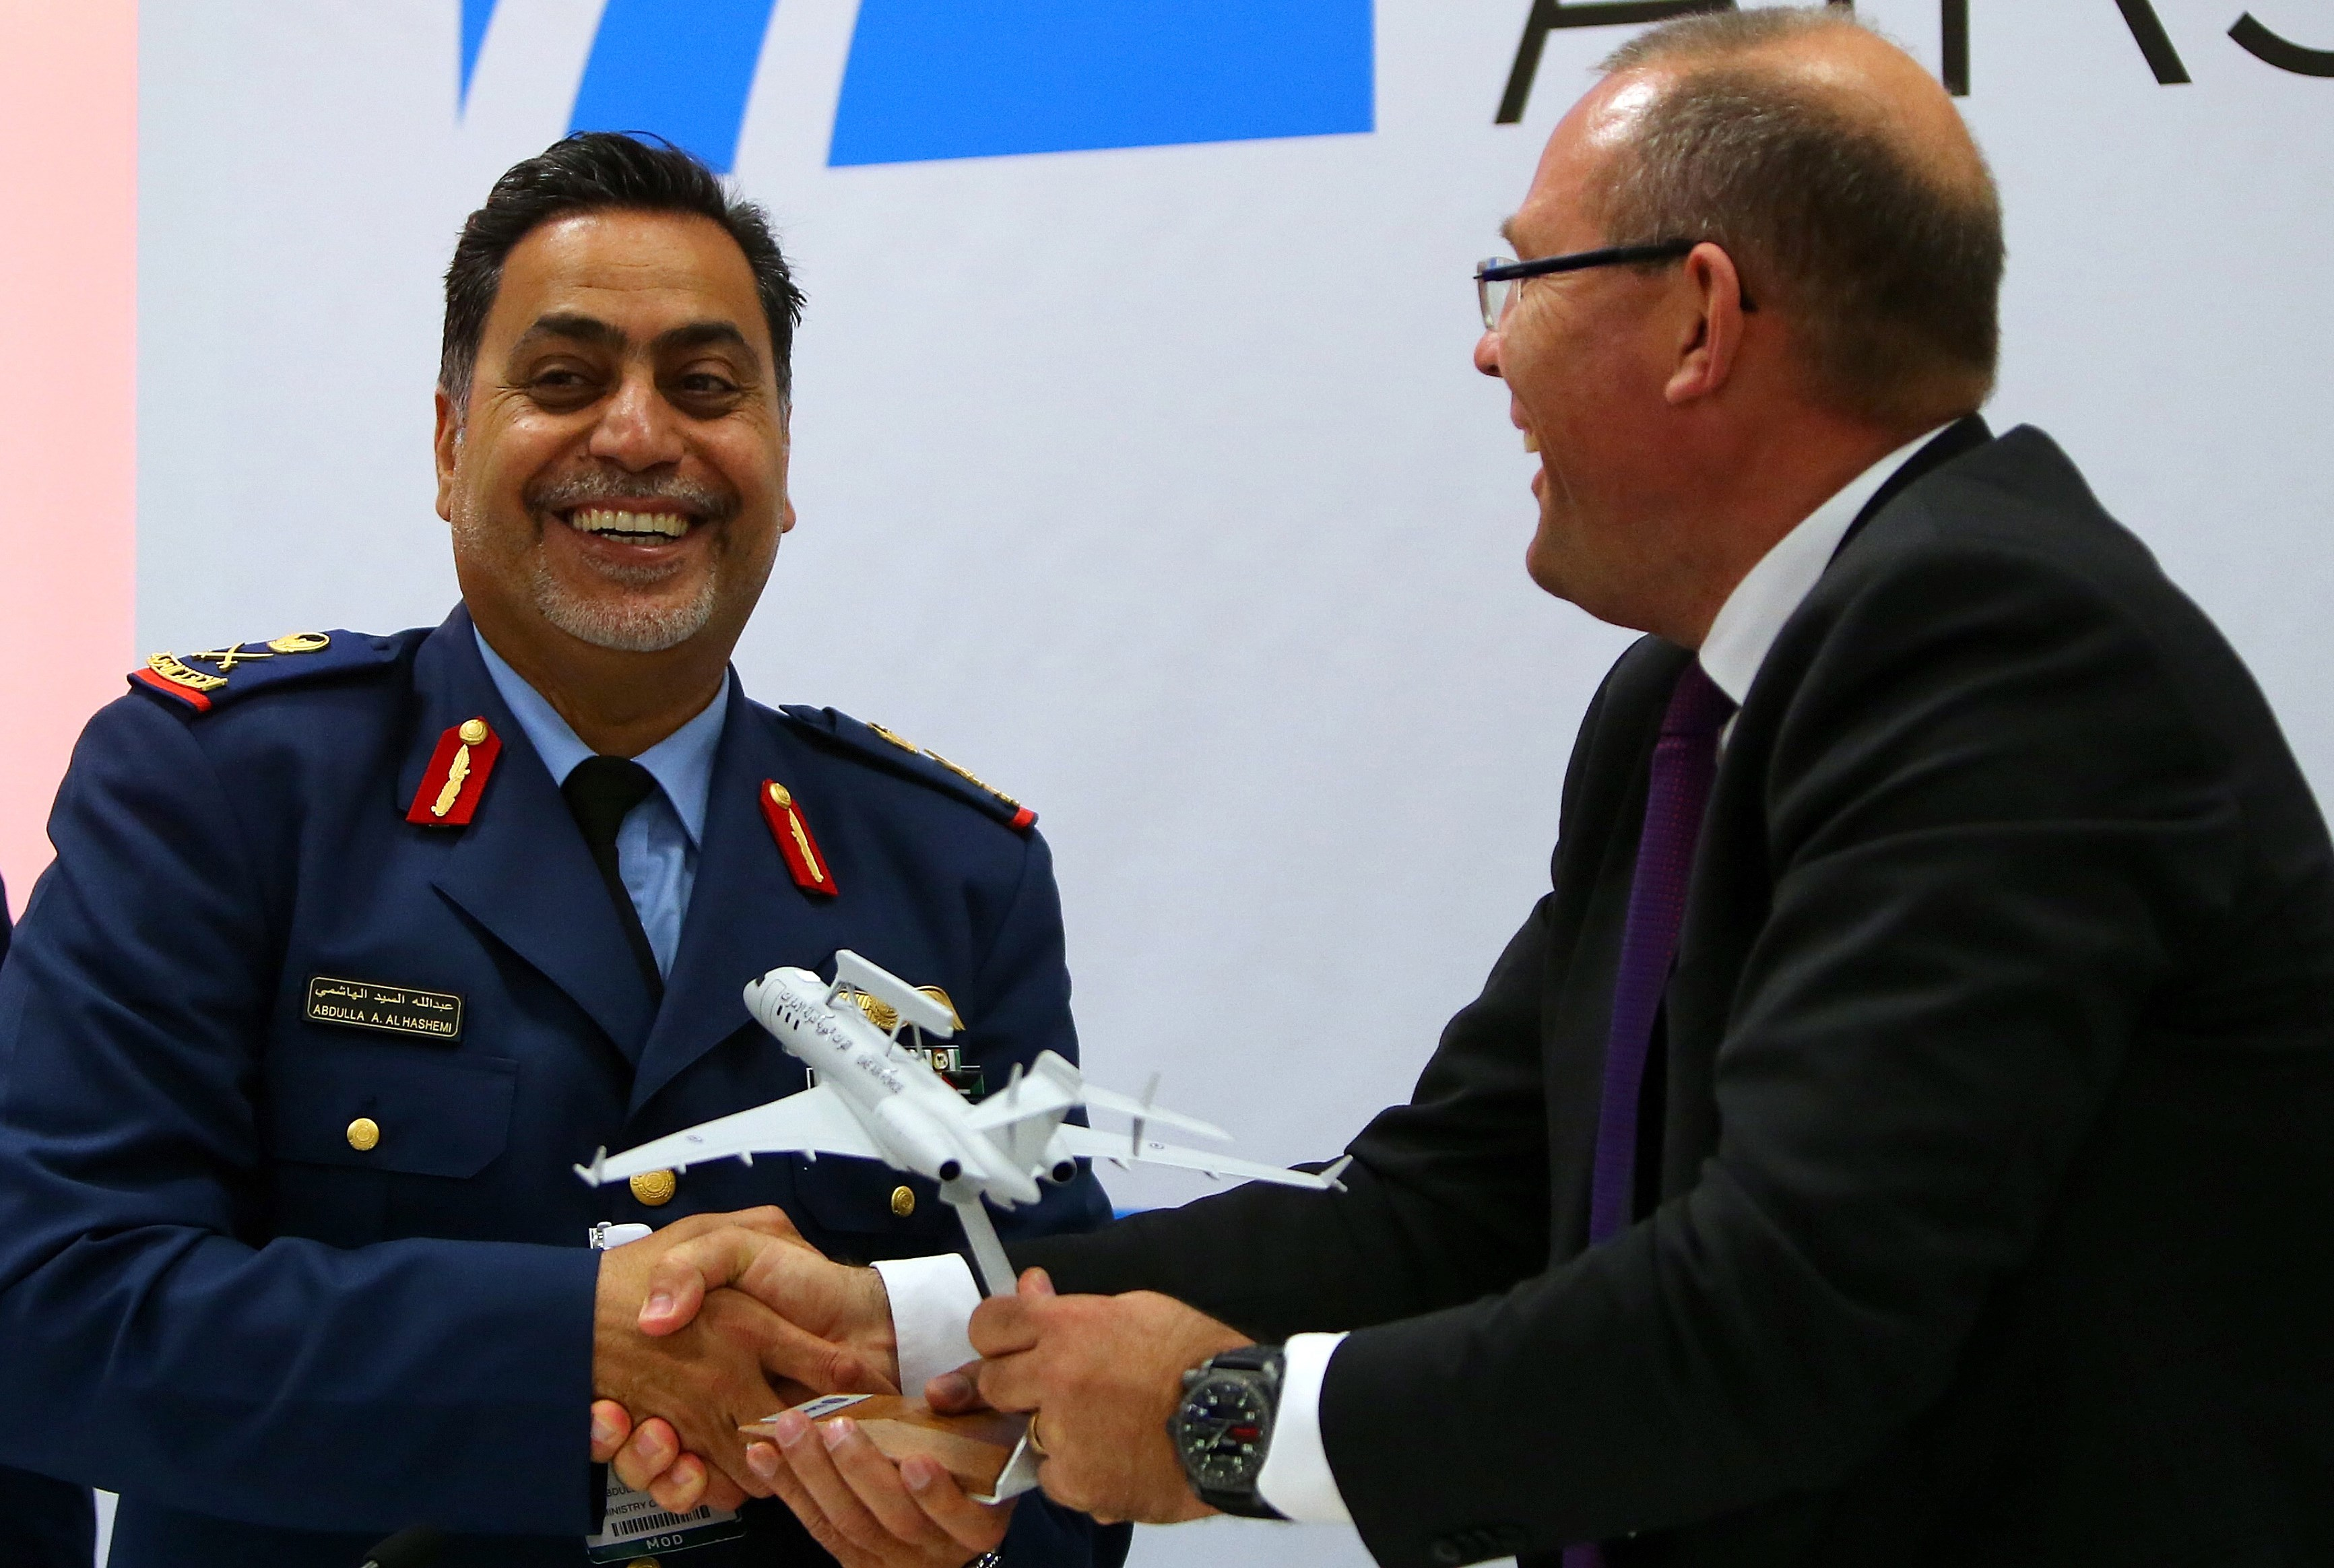 United Arab Emirates (UAE) Ministry of Defence's executive director of strategic analysis, Major General Abdullah al-Hashimi (L), receives a model of the surveillance plane Saab Global 6000 from Saab president and chief executive officer, Hakan Buskhe, at the Dubai Airshow in November 2015. The company says the first aircraft will be delivered in April 2020. (Marwan Naamani/AFP/Getty Images)